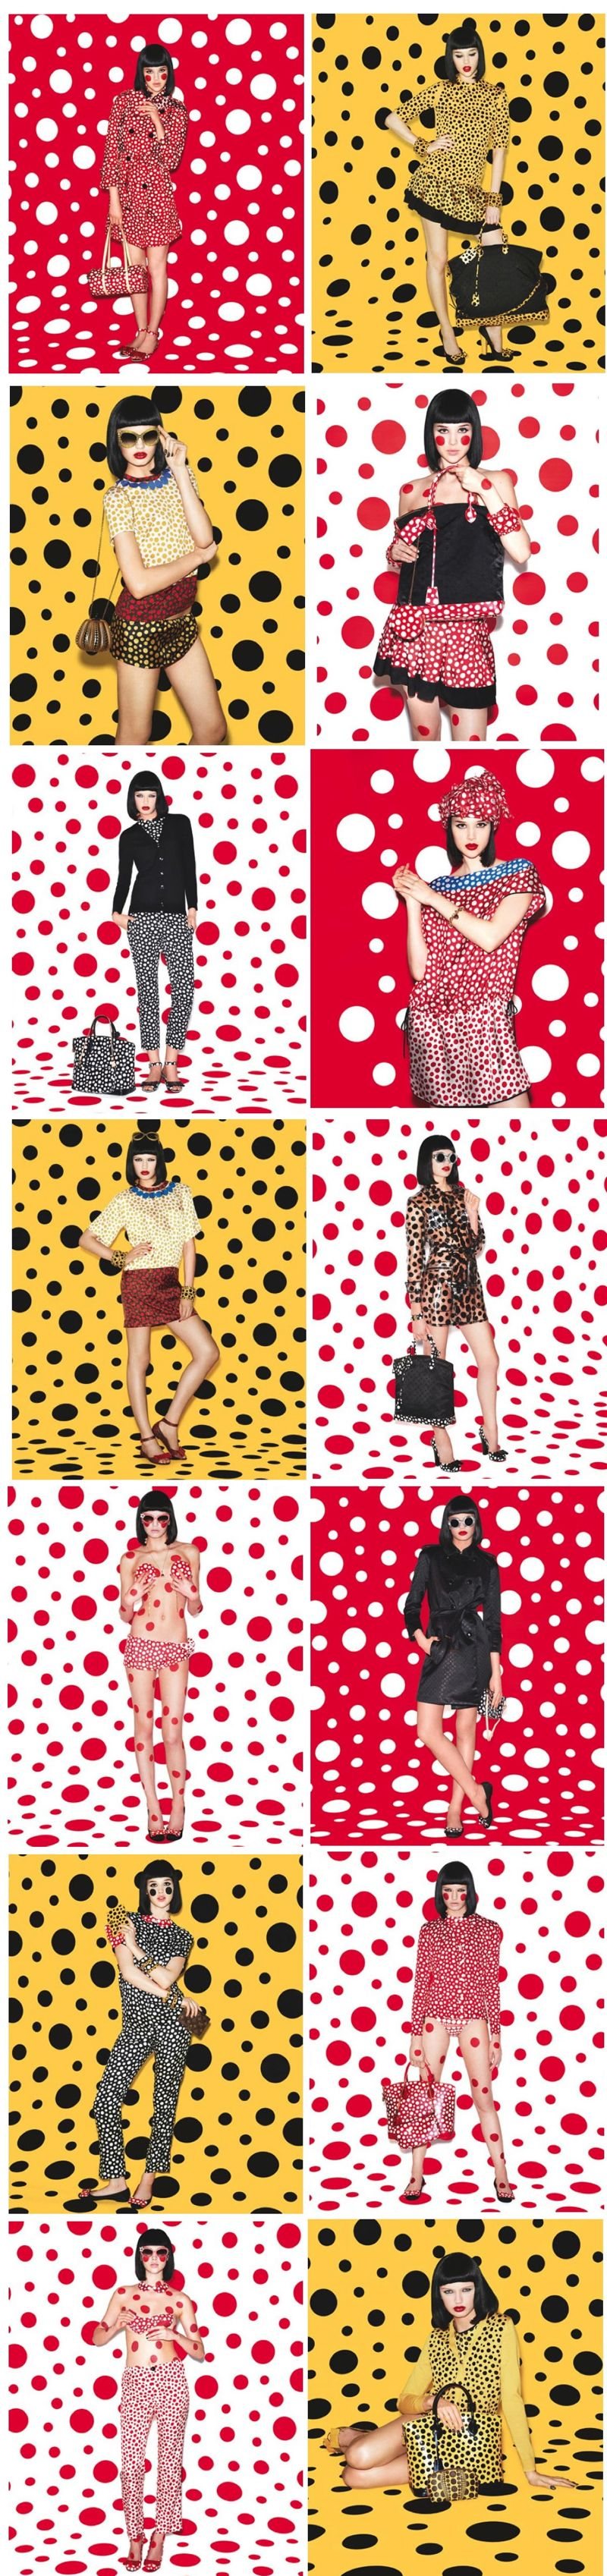 Yayoi Kusama for Louis Vuitton  YAYOI KUSAMA FOR LOUIS VUITTON INFINITELY KUSAMA